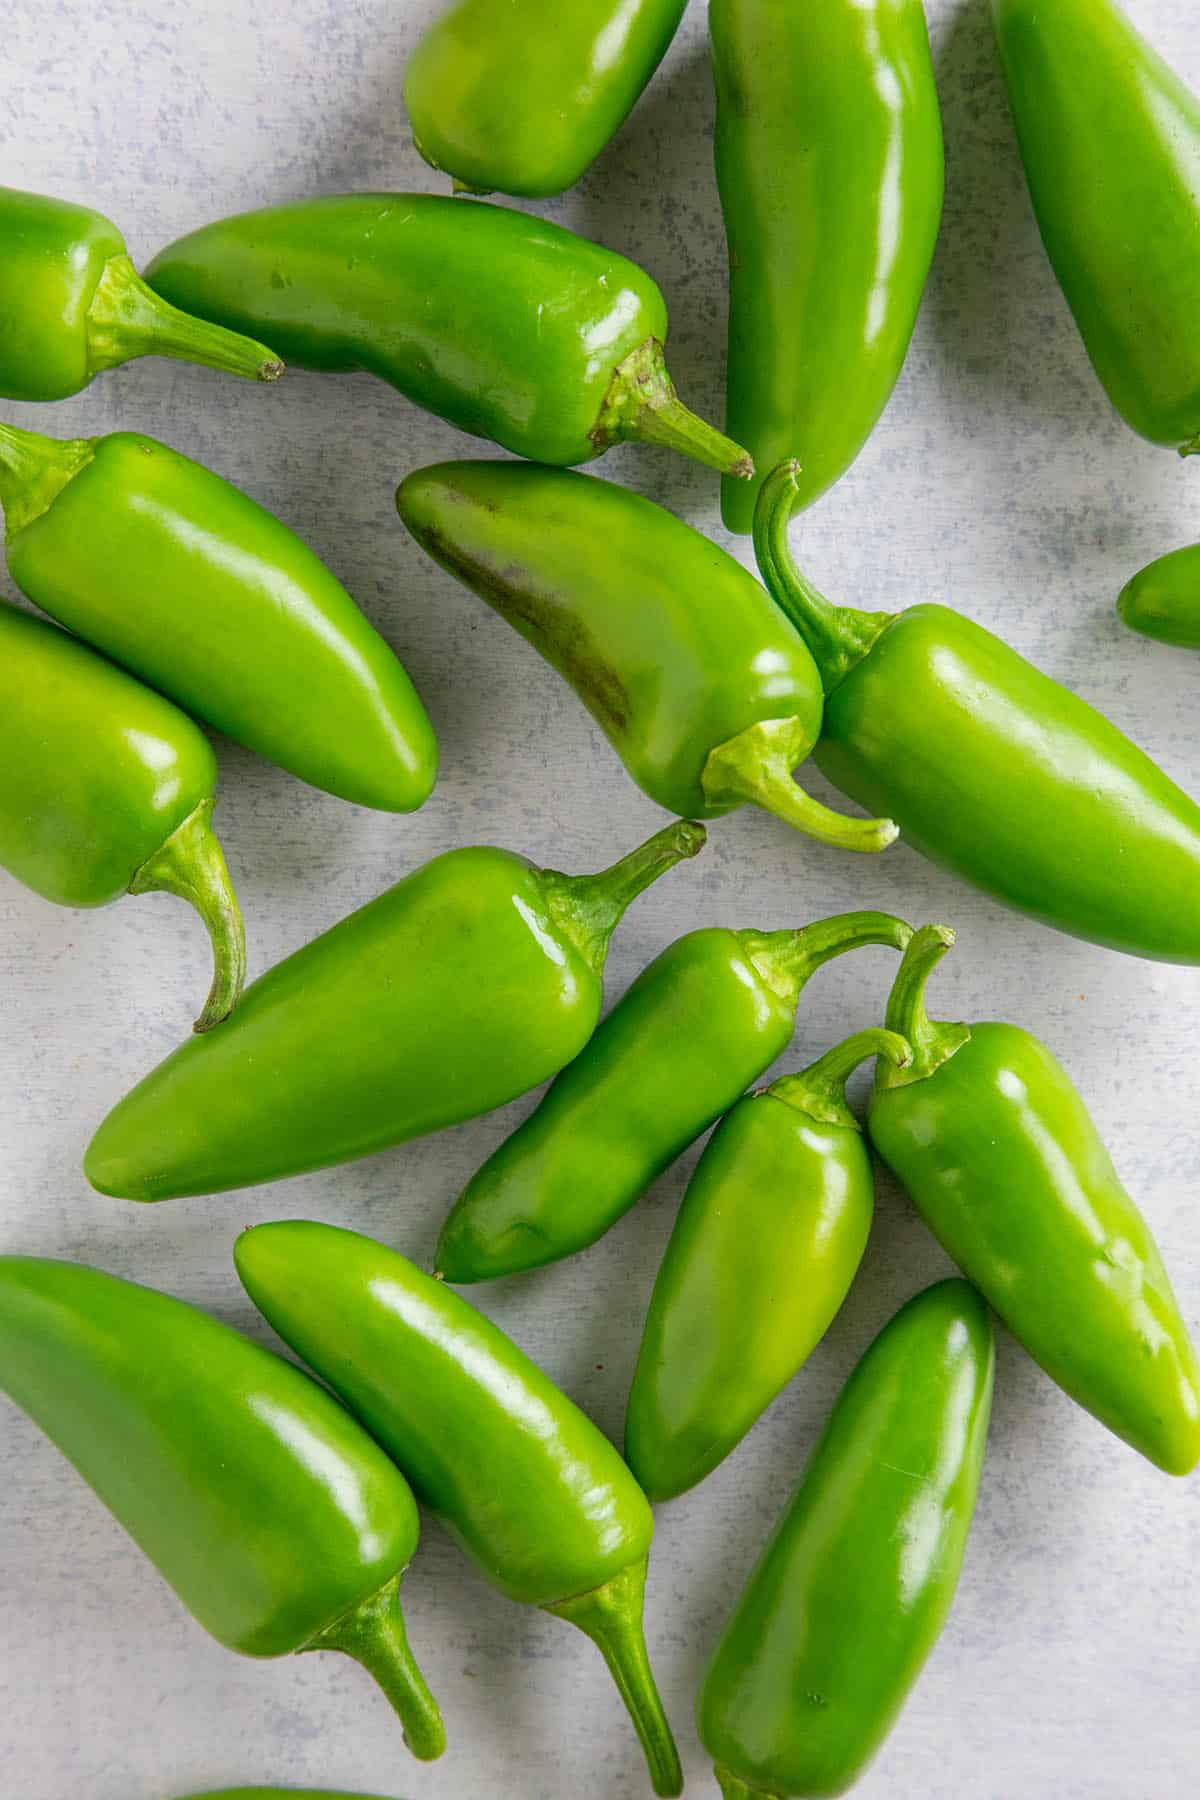 A Pile of Jalapeno Peppers